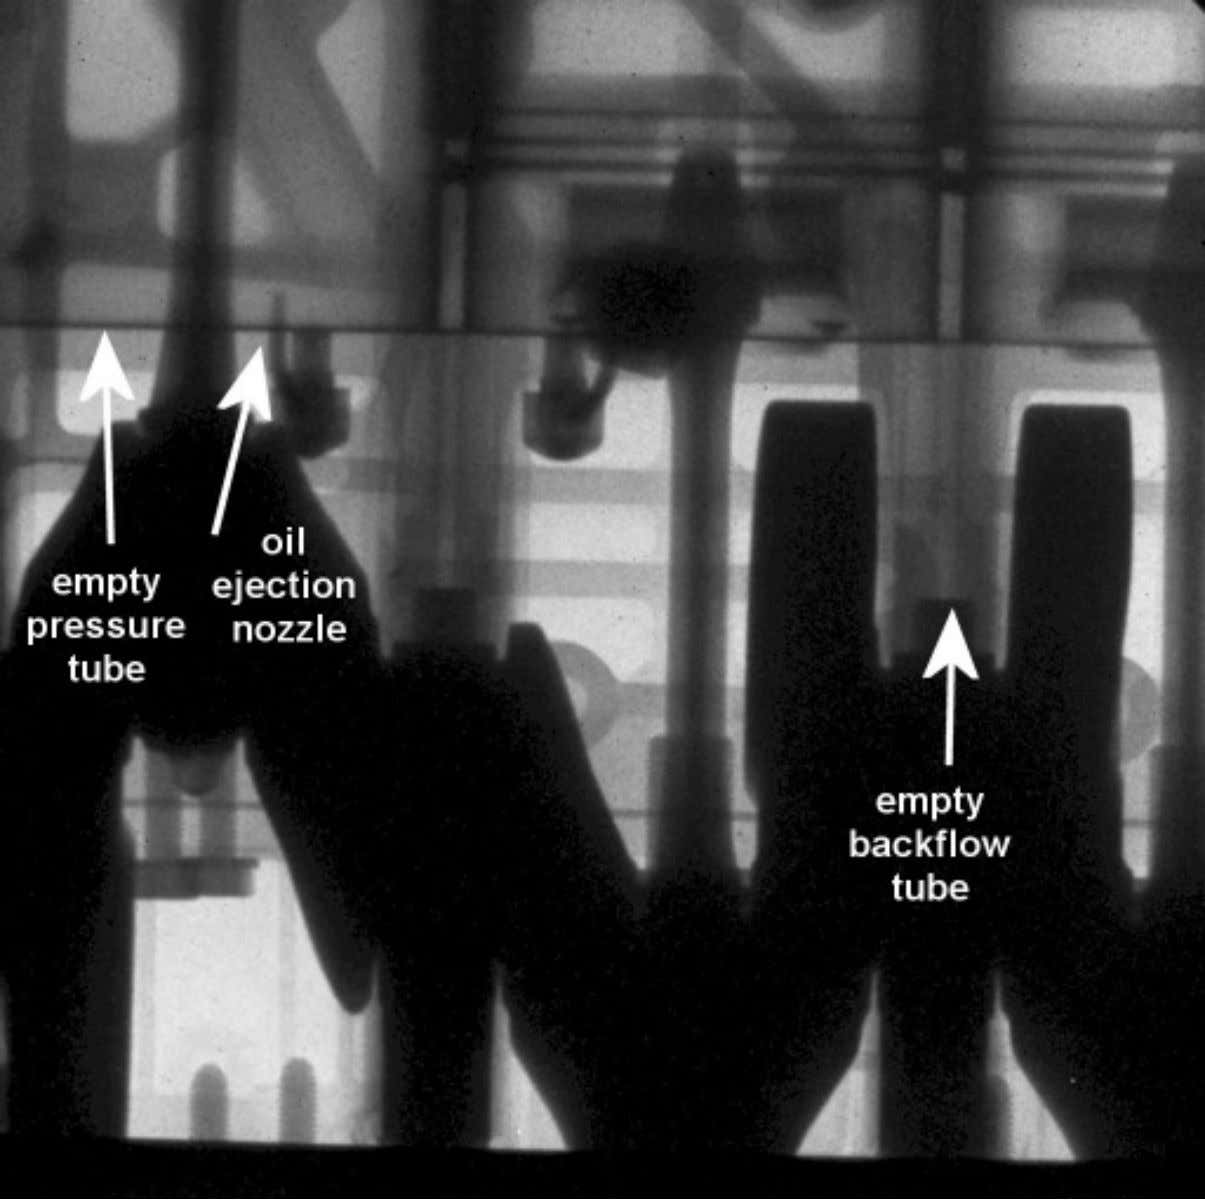 radiography of the engine, with horizontal pressure tubes and vertical backflow tubes empty Charlie Chong/ Fion